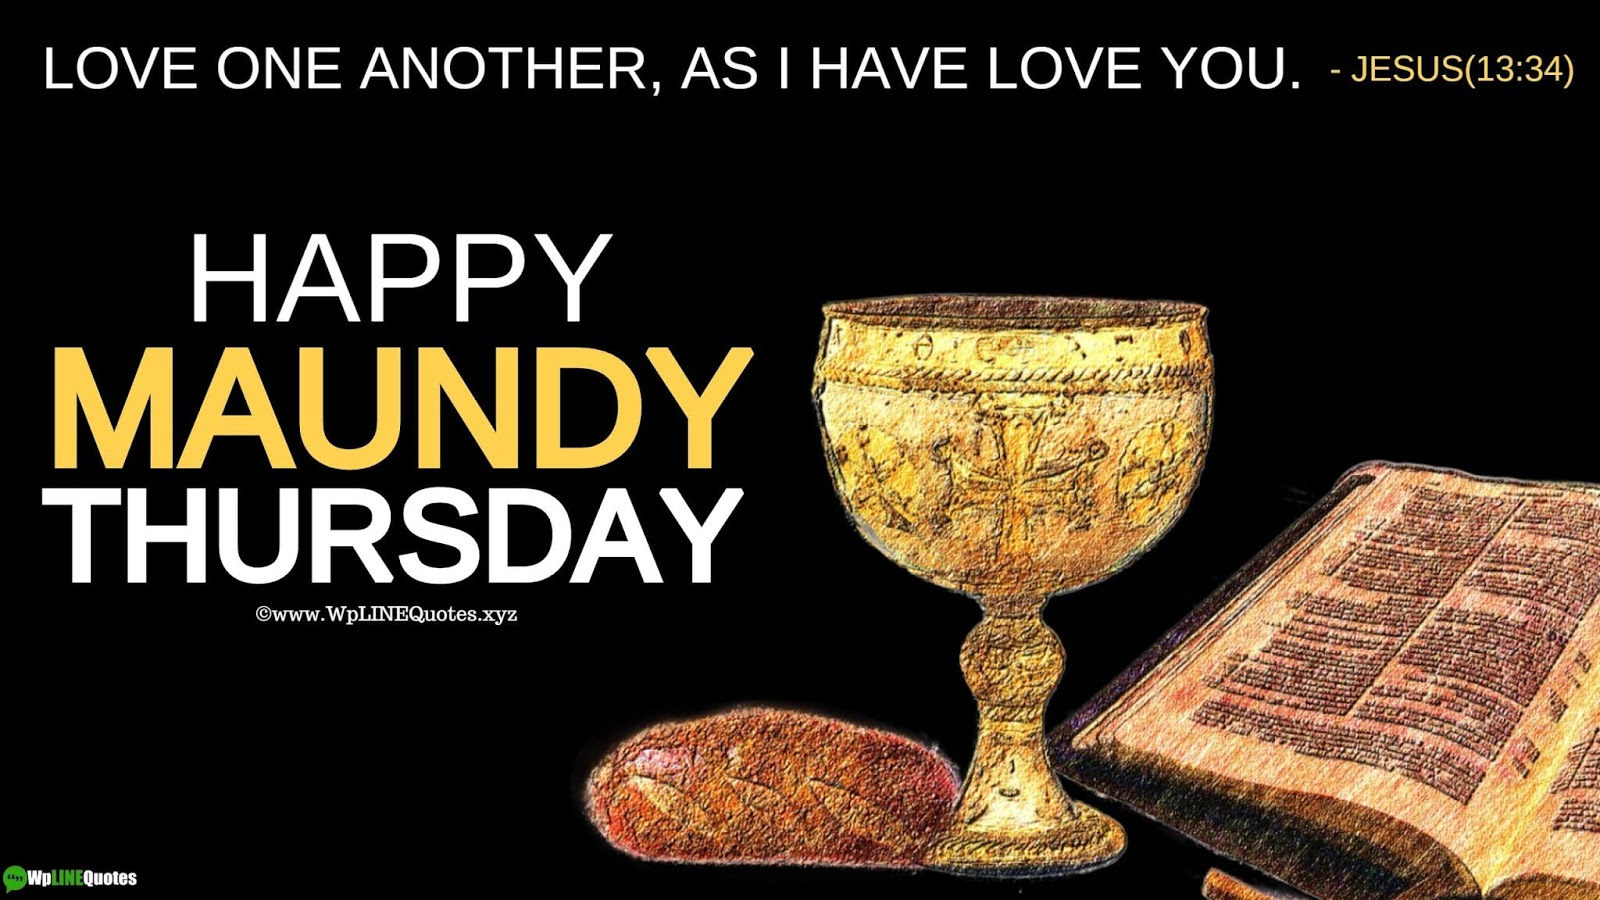 Maundy Thursday Quotes, Wishes, Meaning, History, Message, Poem, Facts, Images, Wallpaper